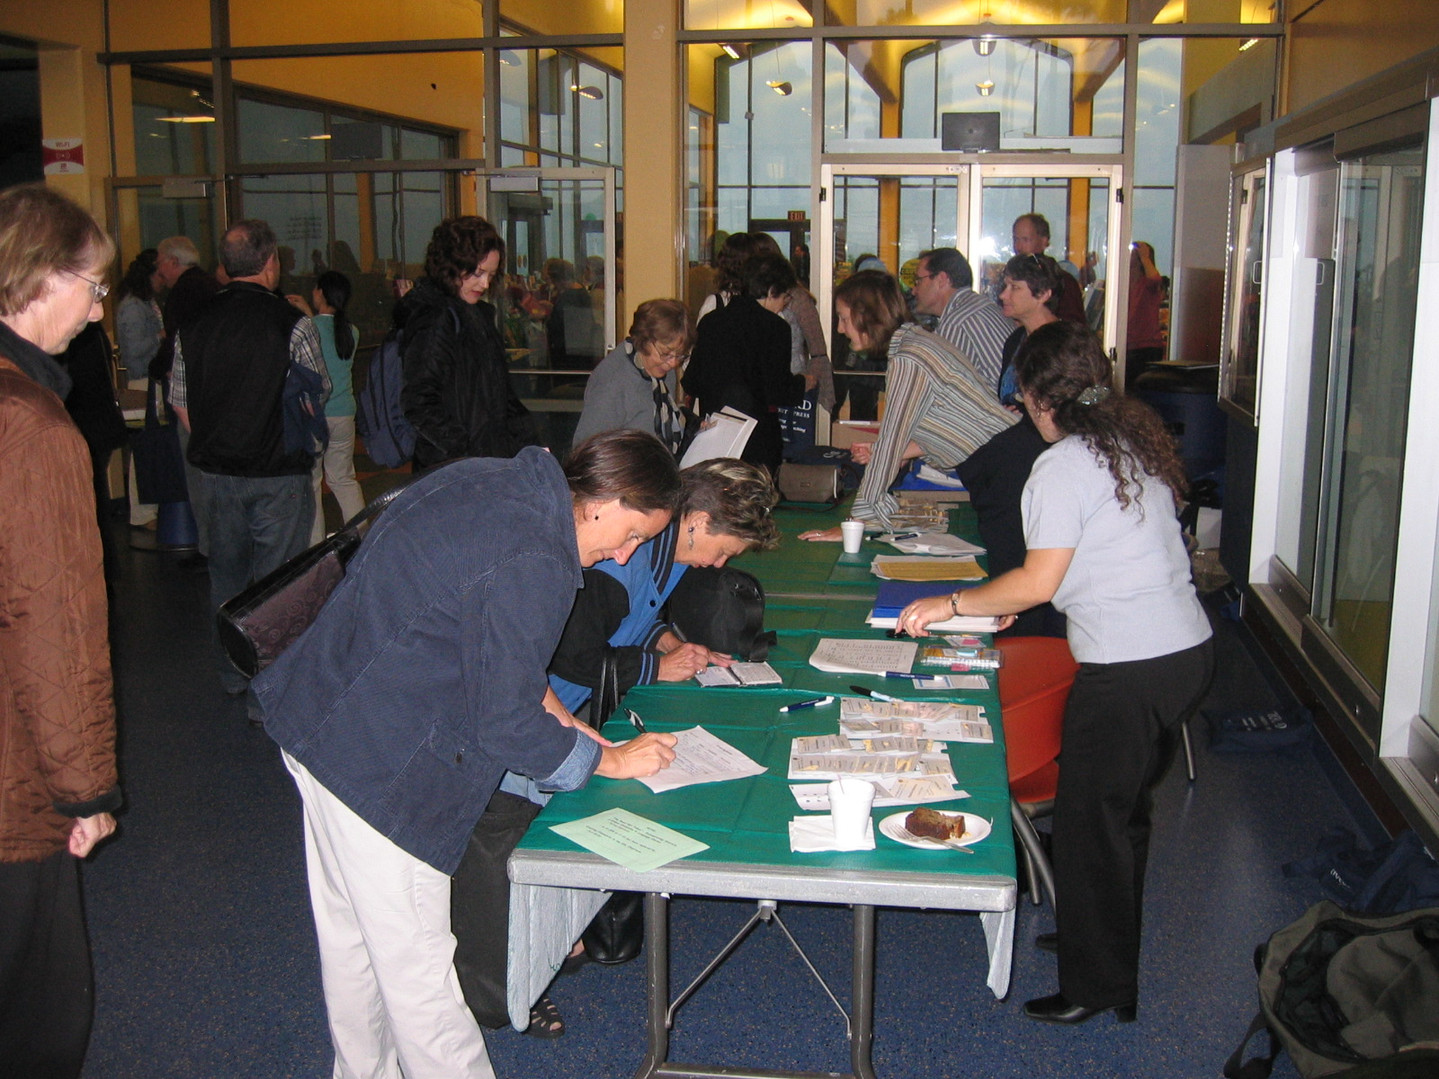 Registration Tables